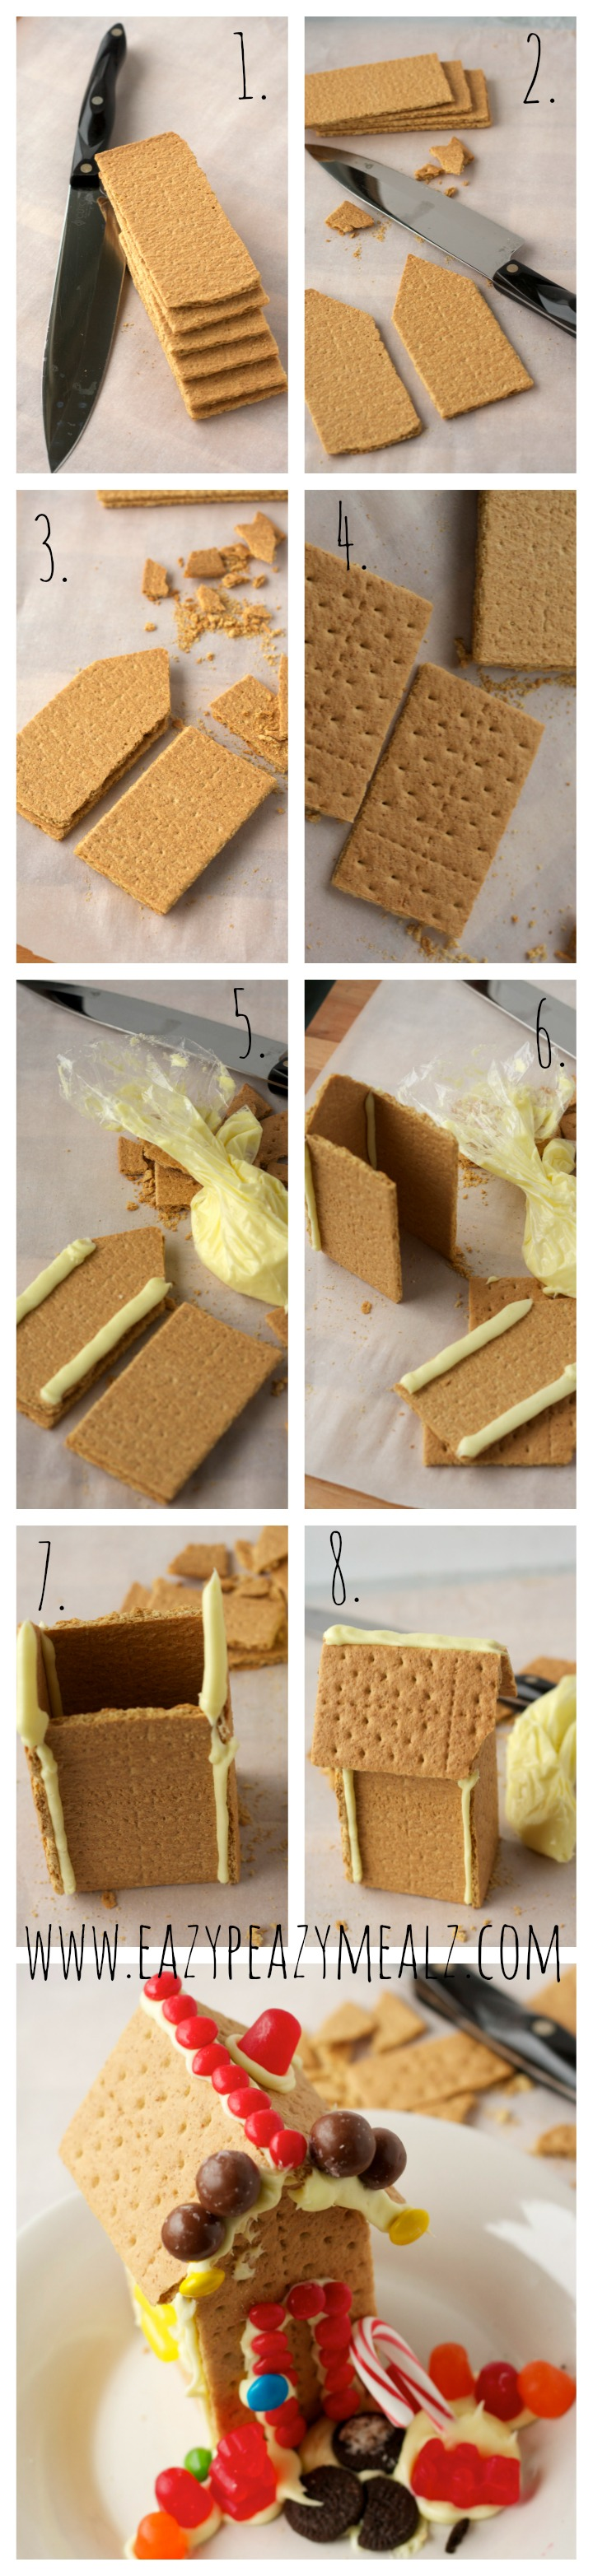 How to make graham cracker houses step by step tutorial